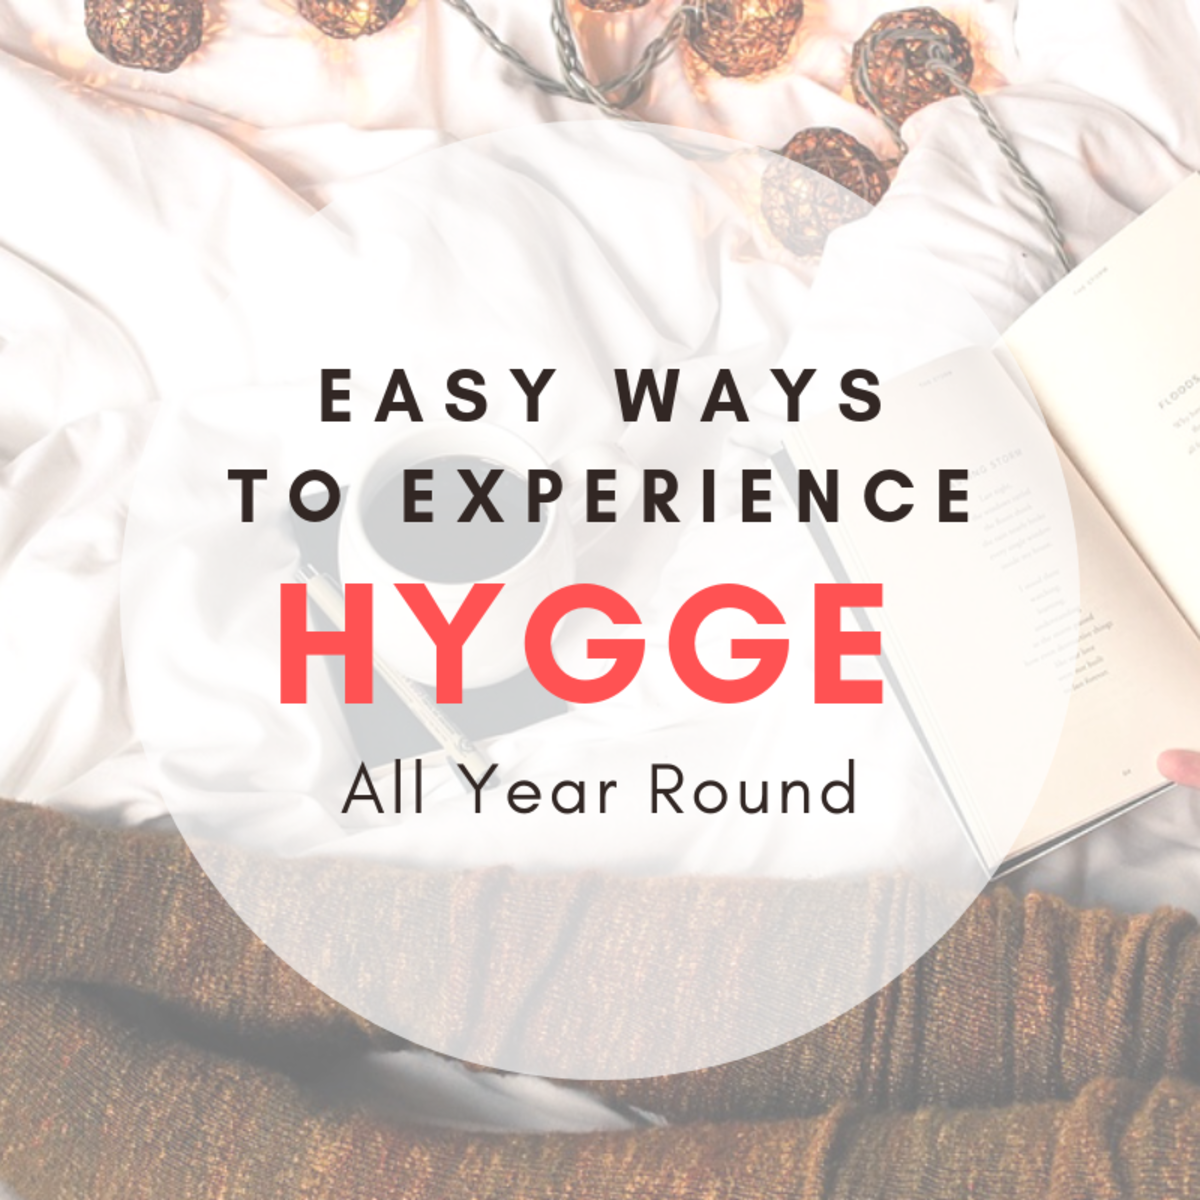 The Danes are considered the happiest people on earth and Hygge might be why. Here are some ways you can experience the Danish art of Hygge all year round for under $10!